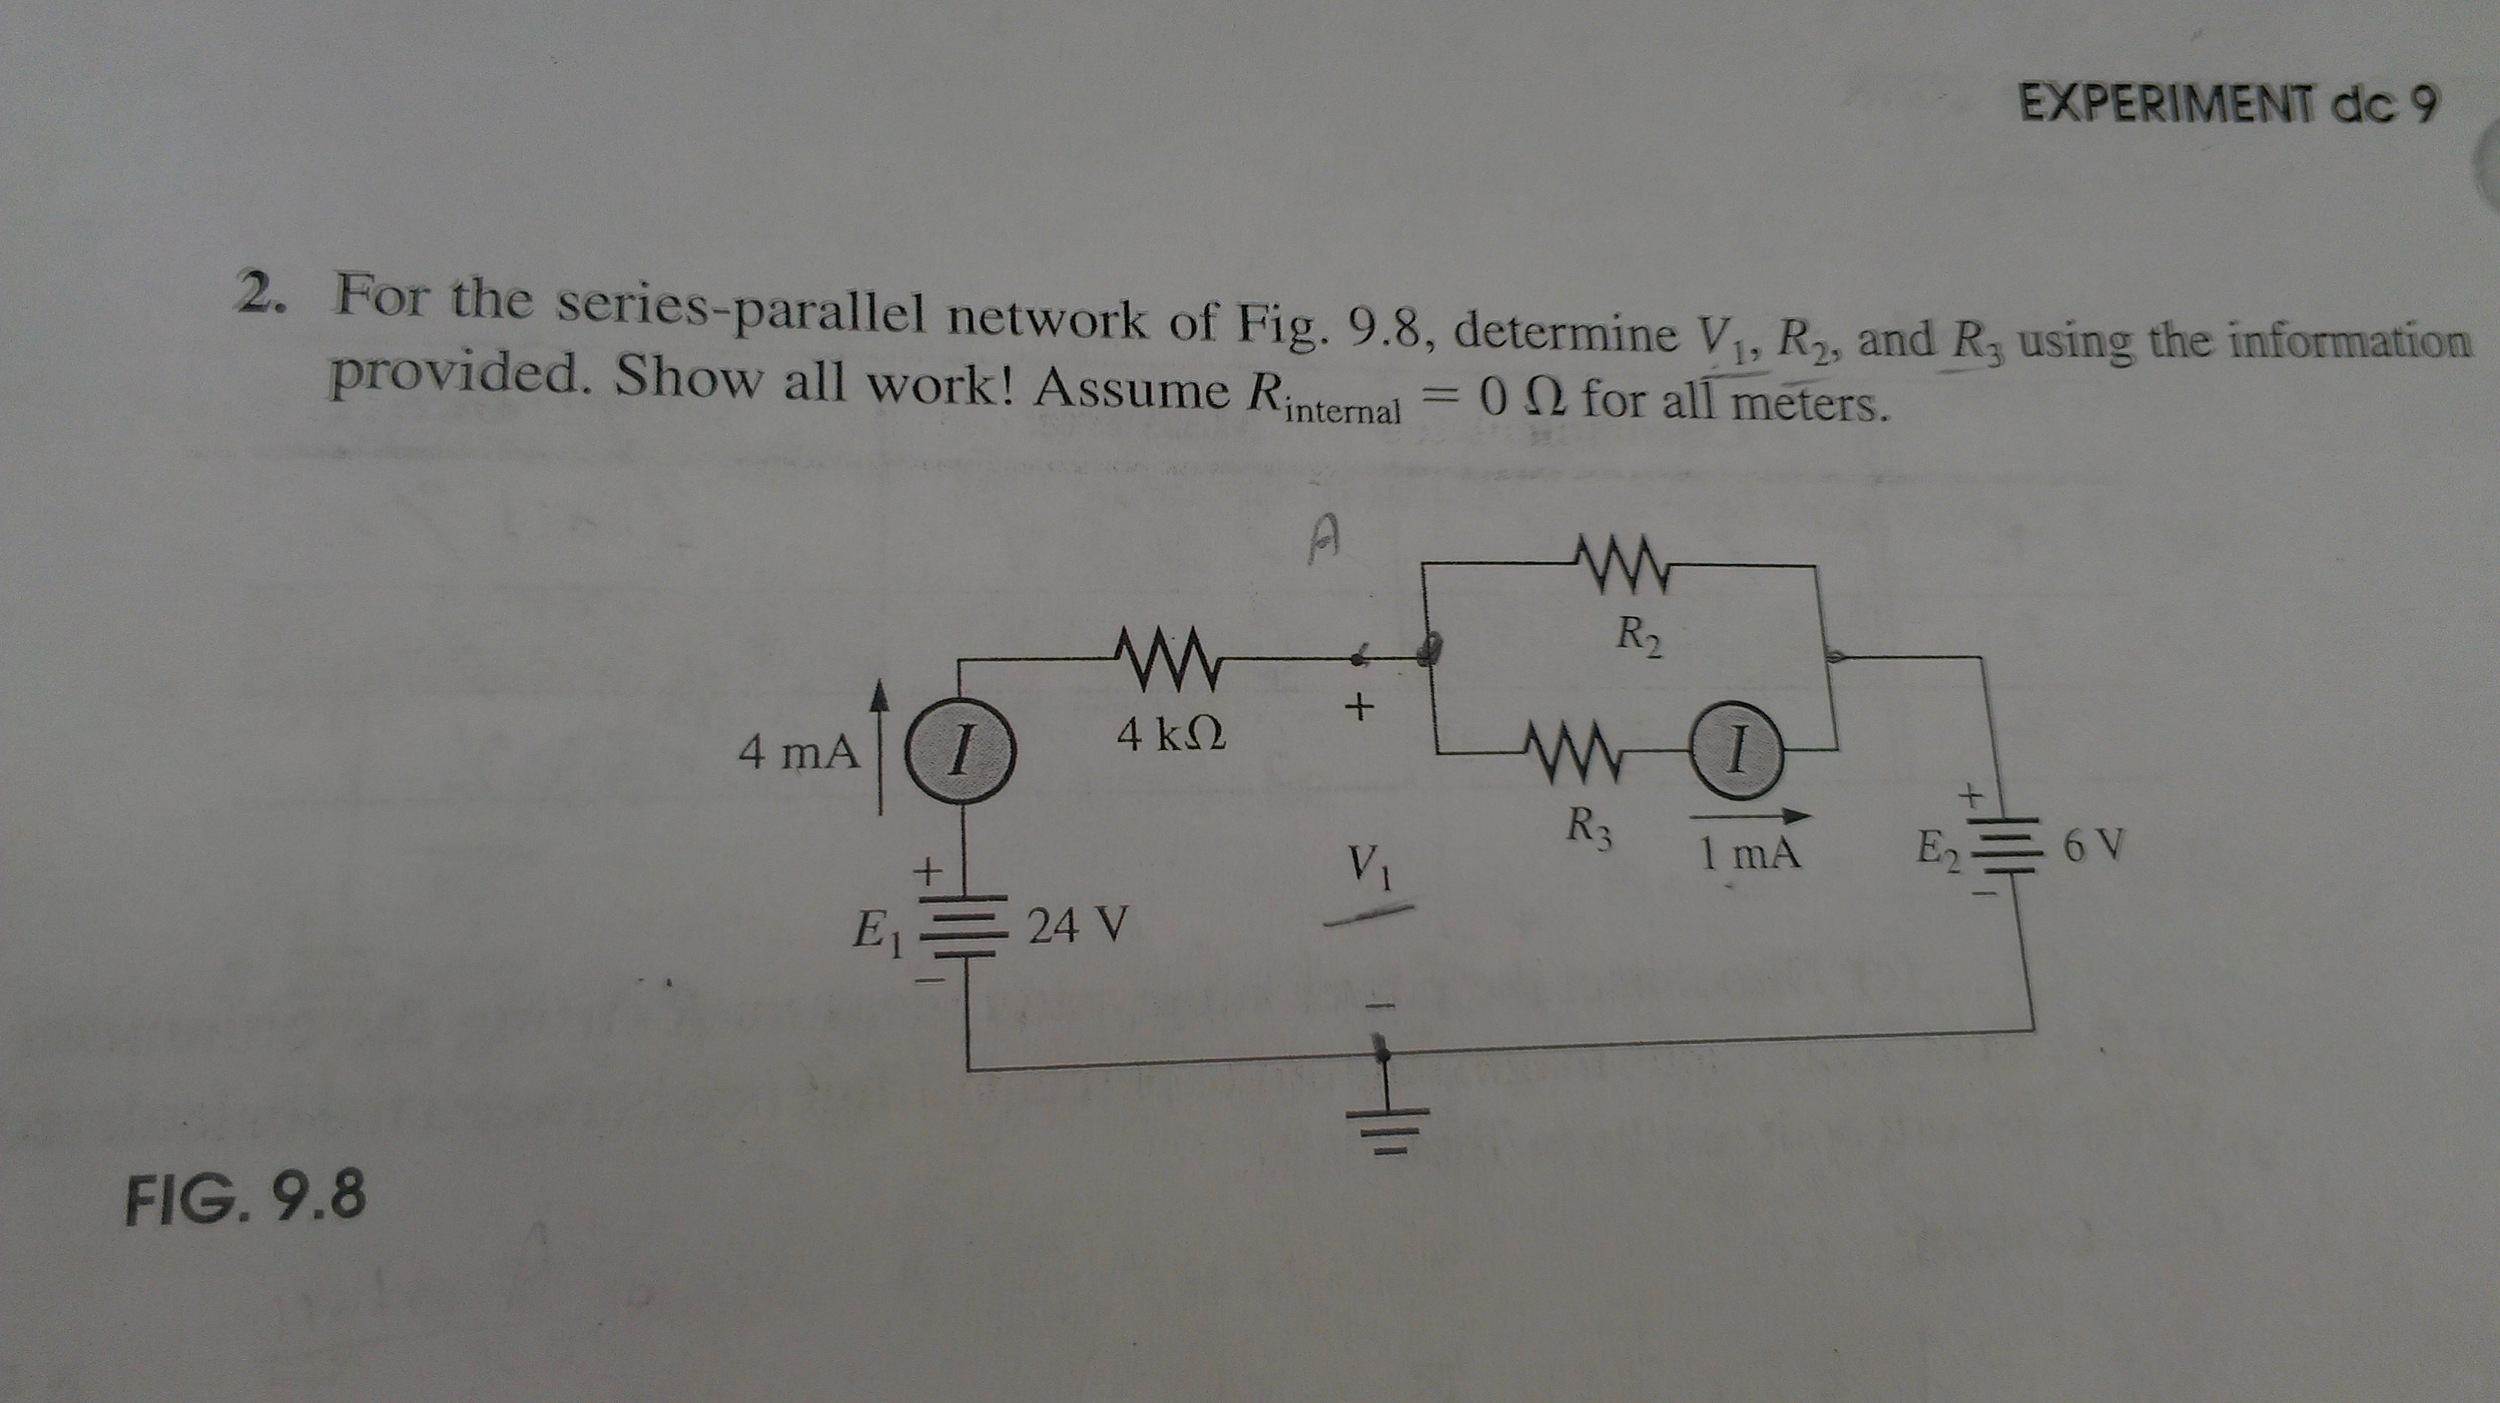 For the series-parallel network of Fig. 9.8, deter